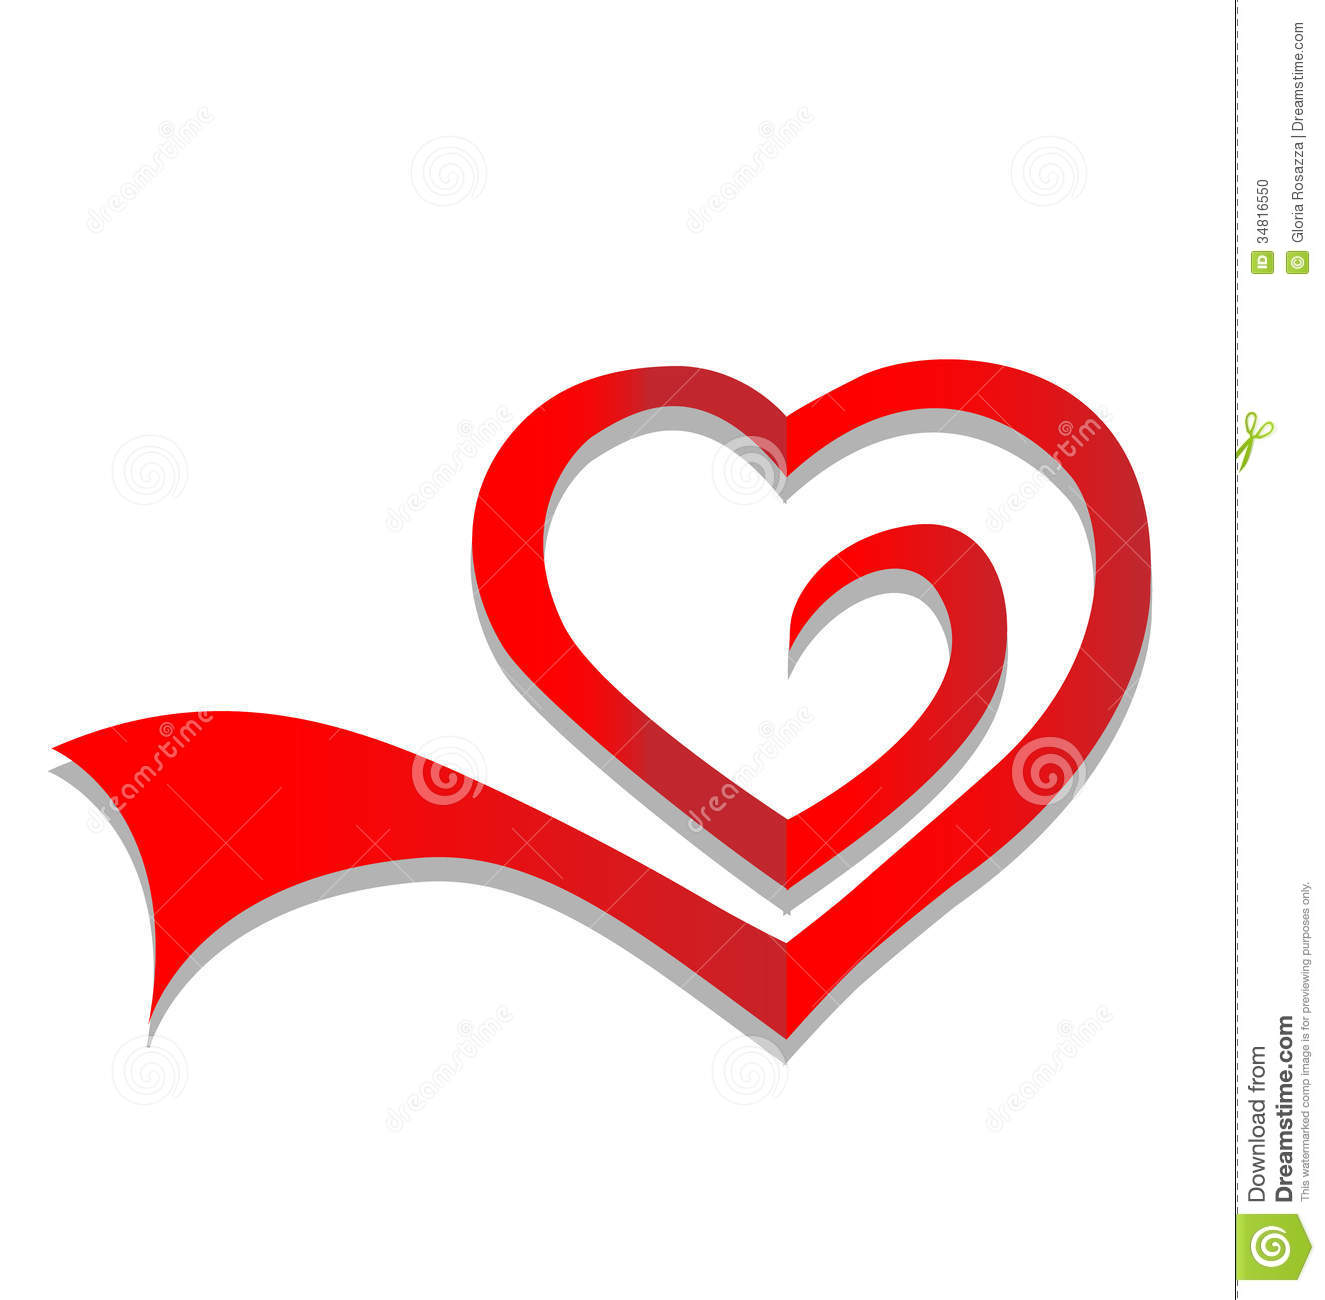 Vector Of Heart Logo Stock Photo - Image: 34816550